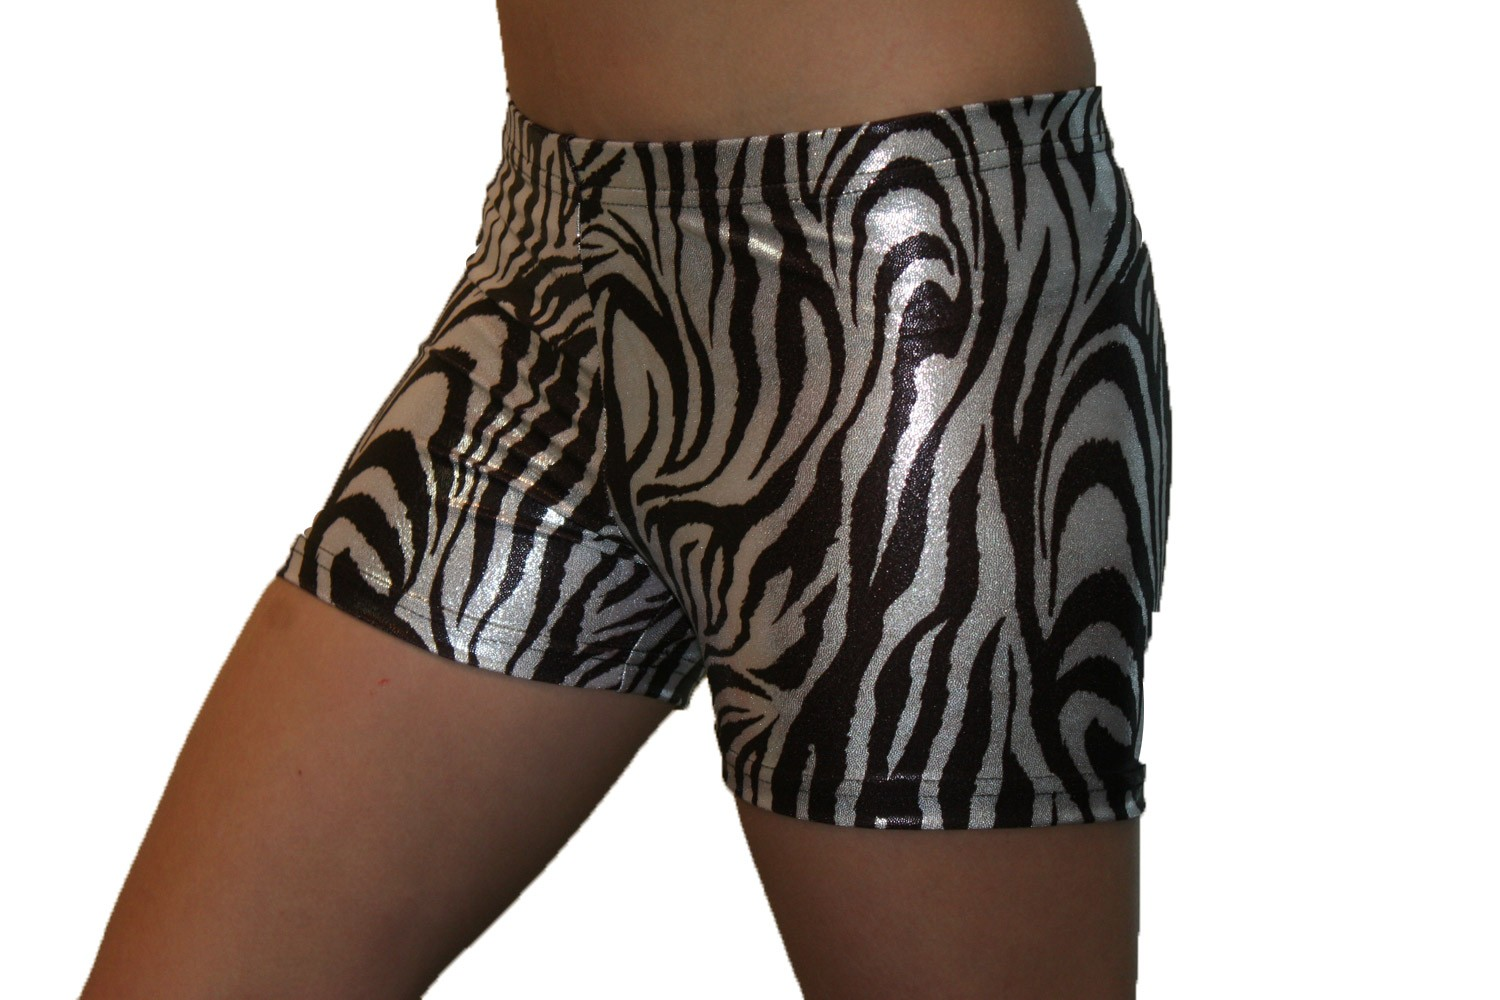 Black & White Metallic Zebra